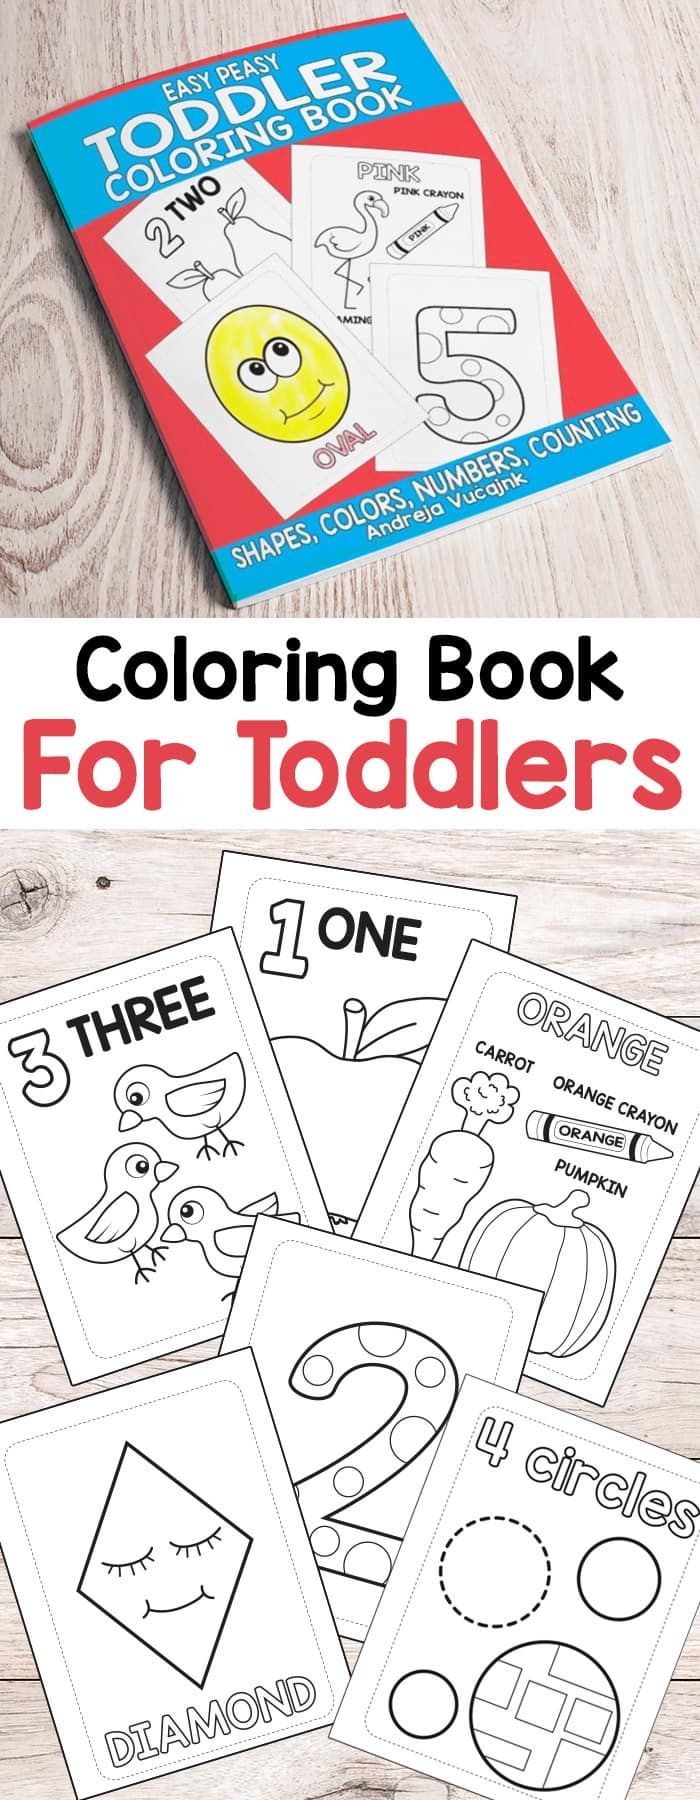 Easy Peasy And Fun: Easy Peasy Toddler Coloring Book